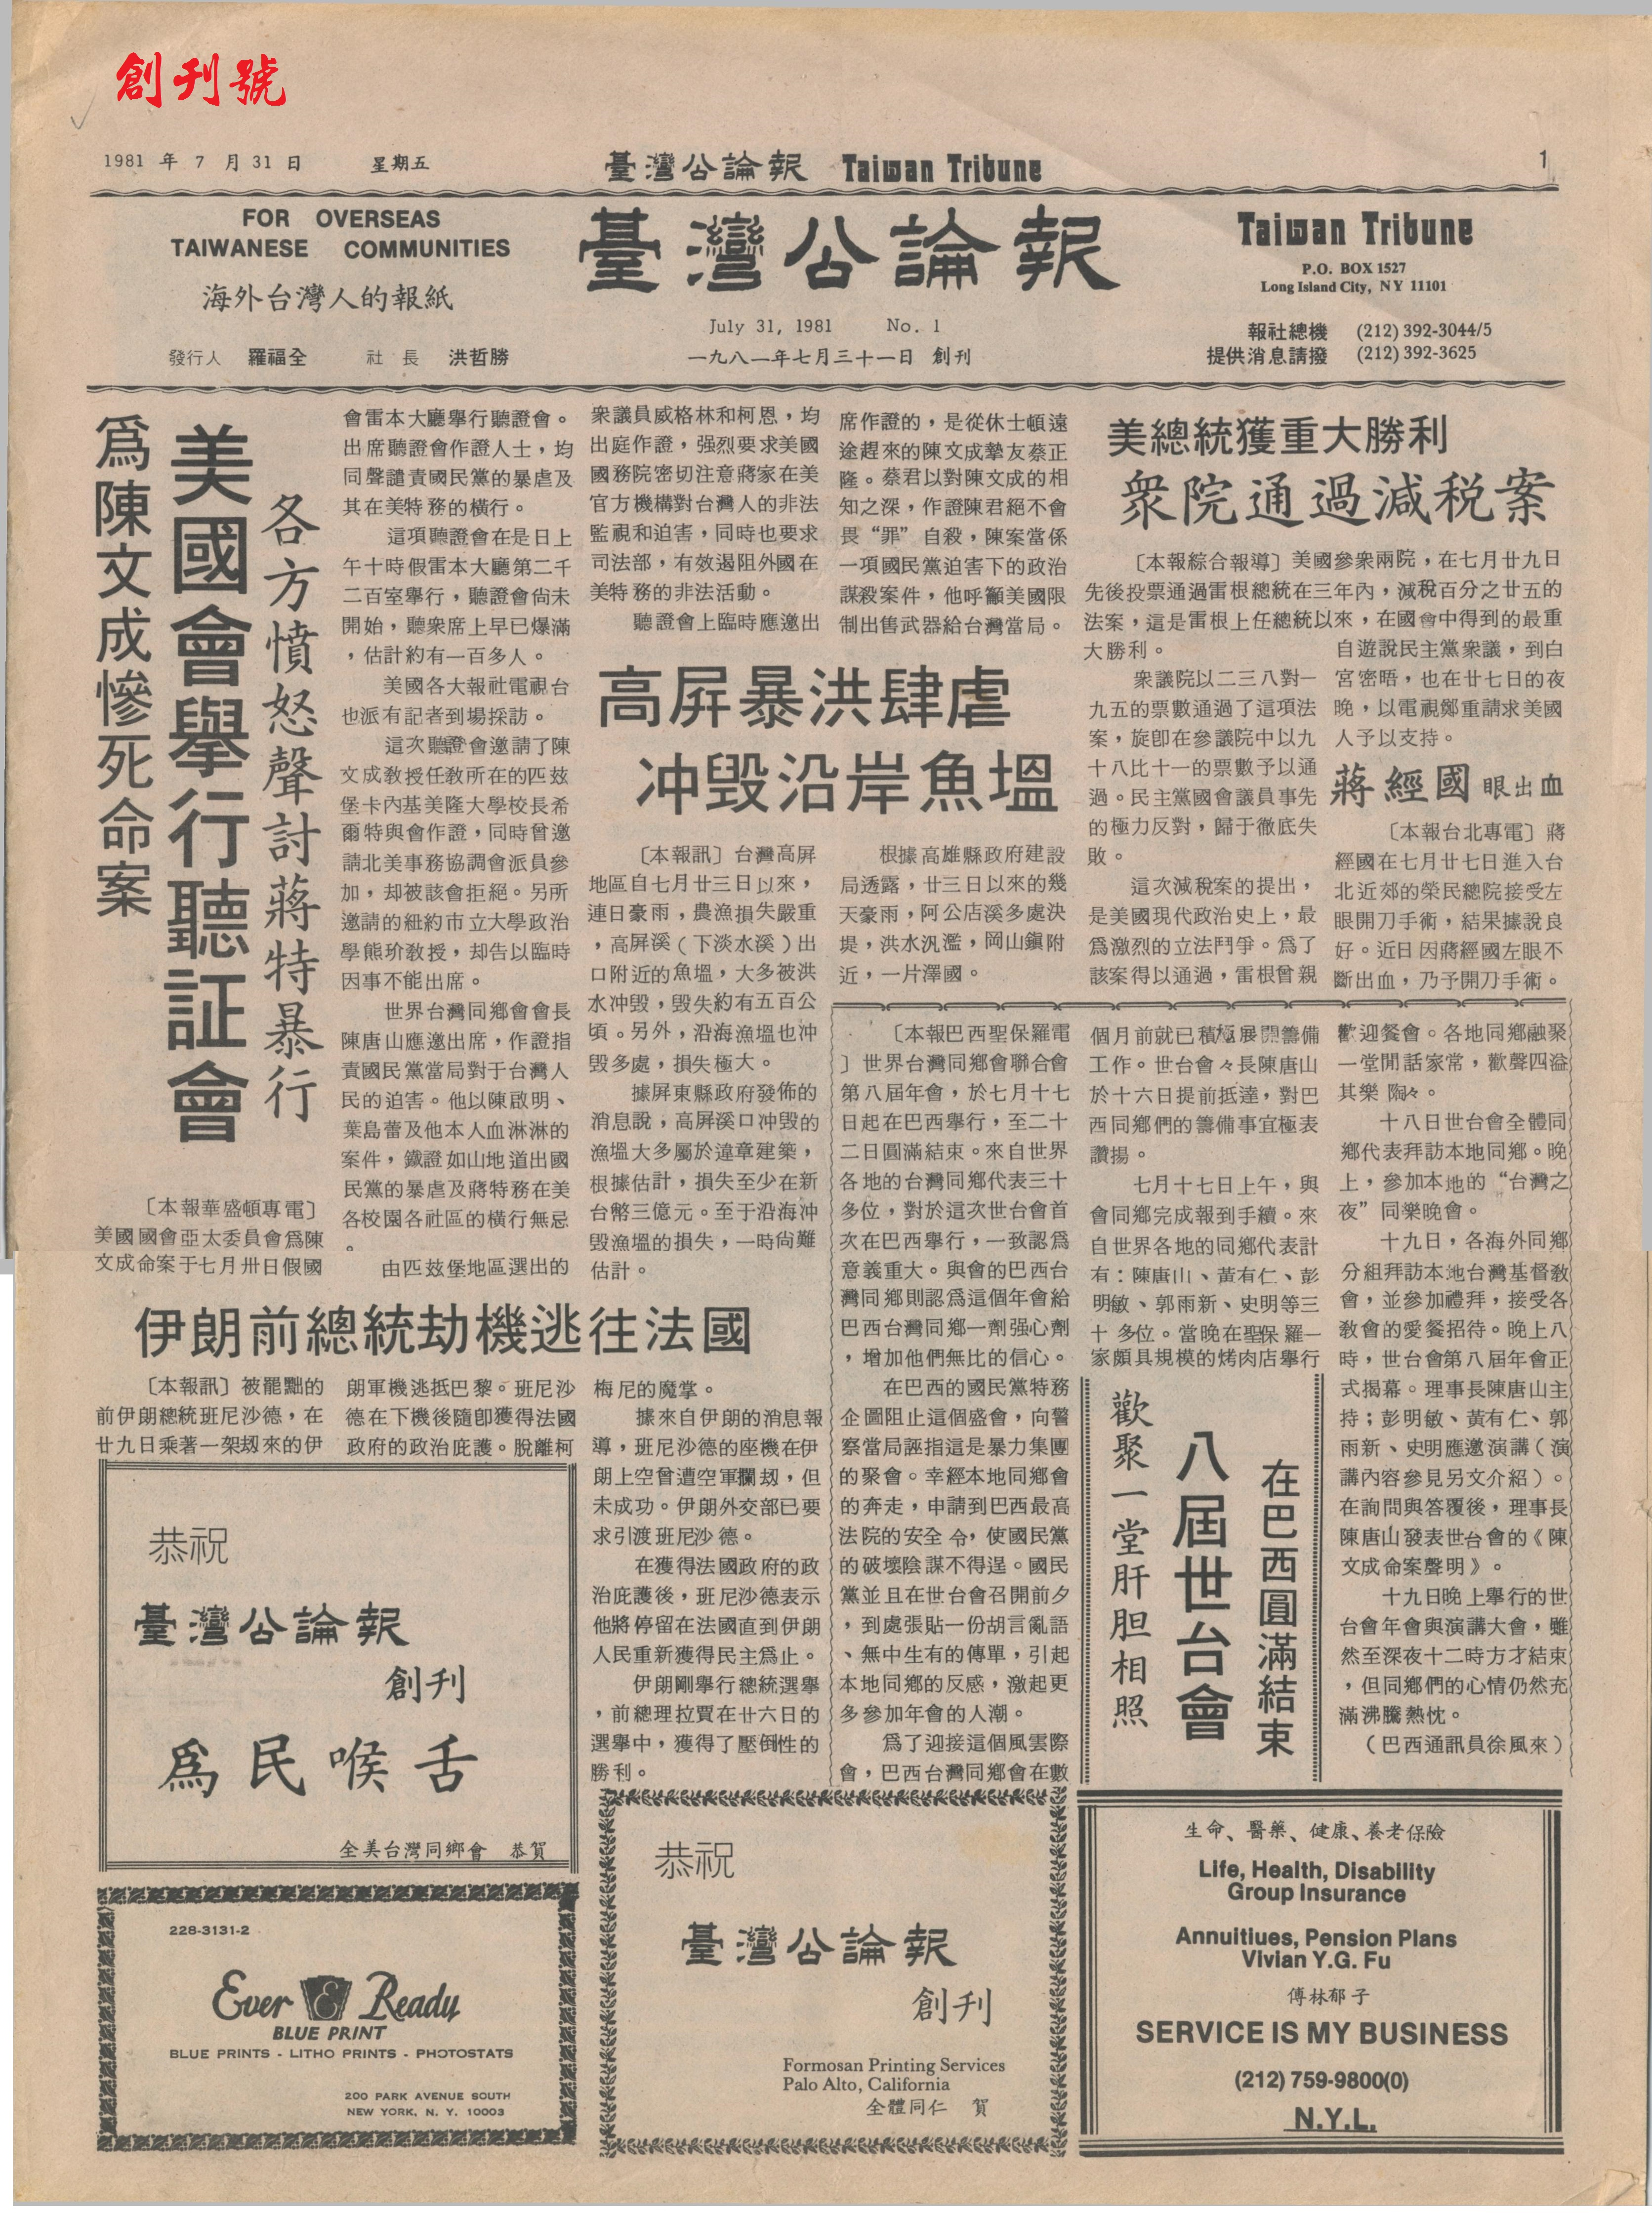 130. Taiwan Tribune / The first newspaper for overseas Taiwanese	7/31/1981